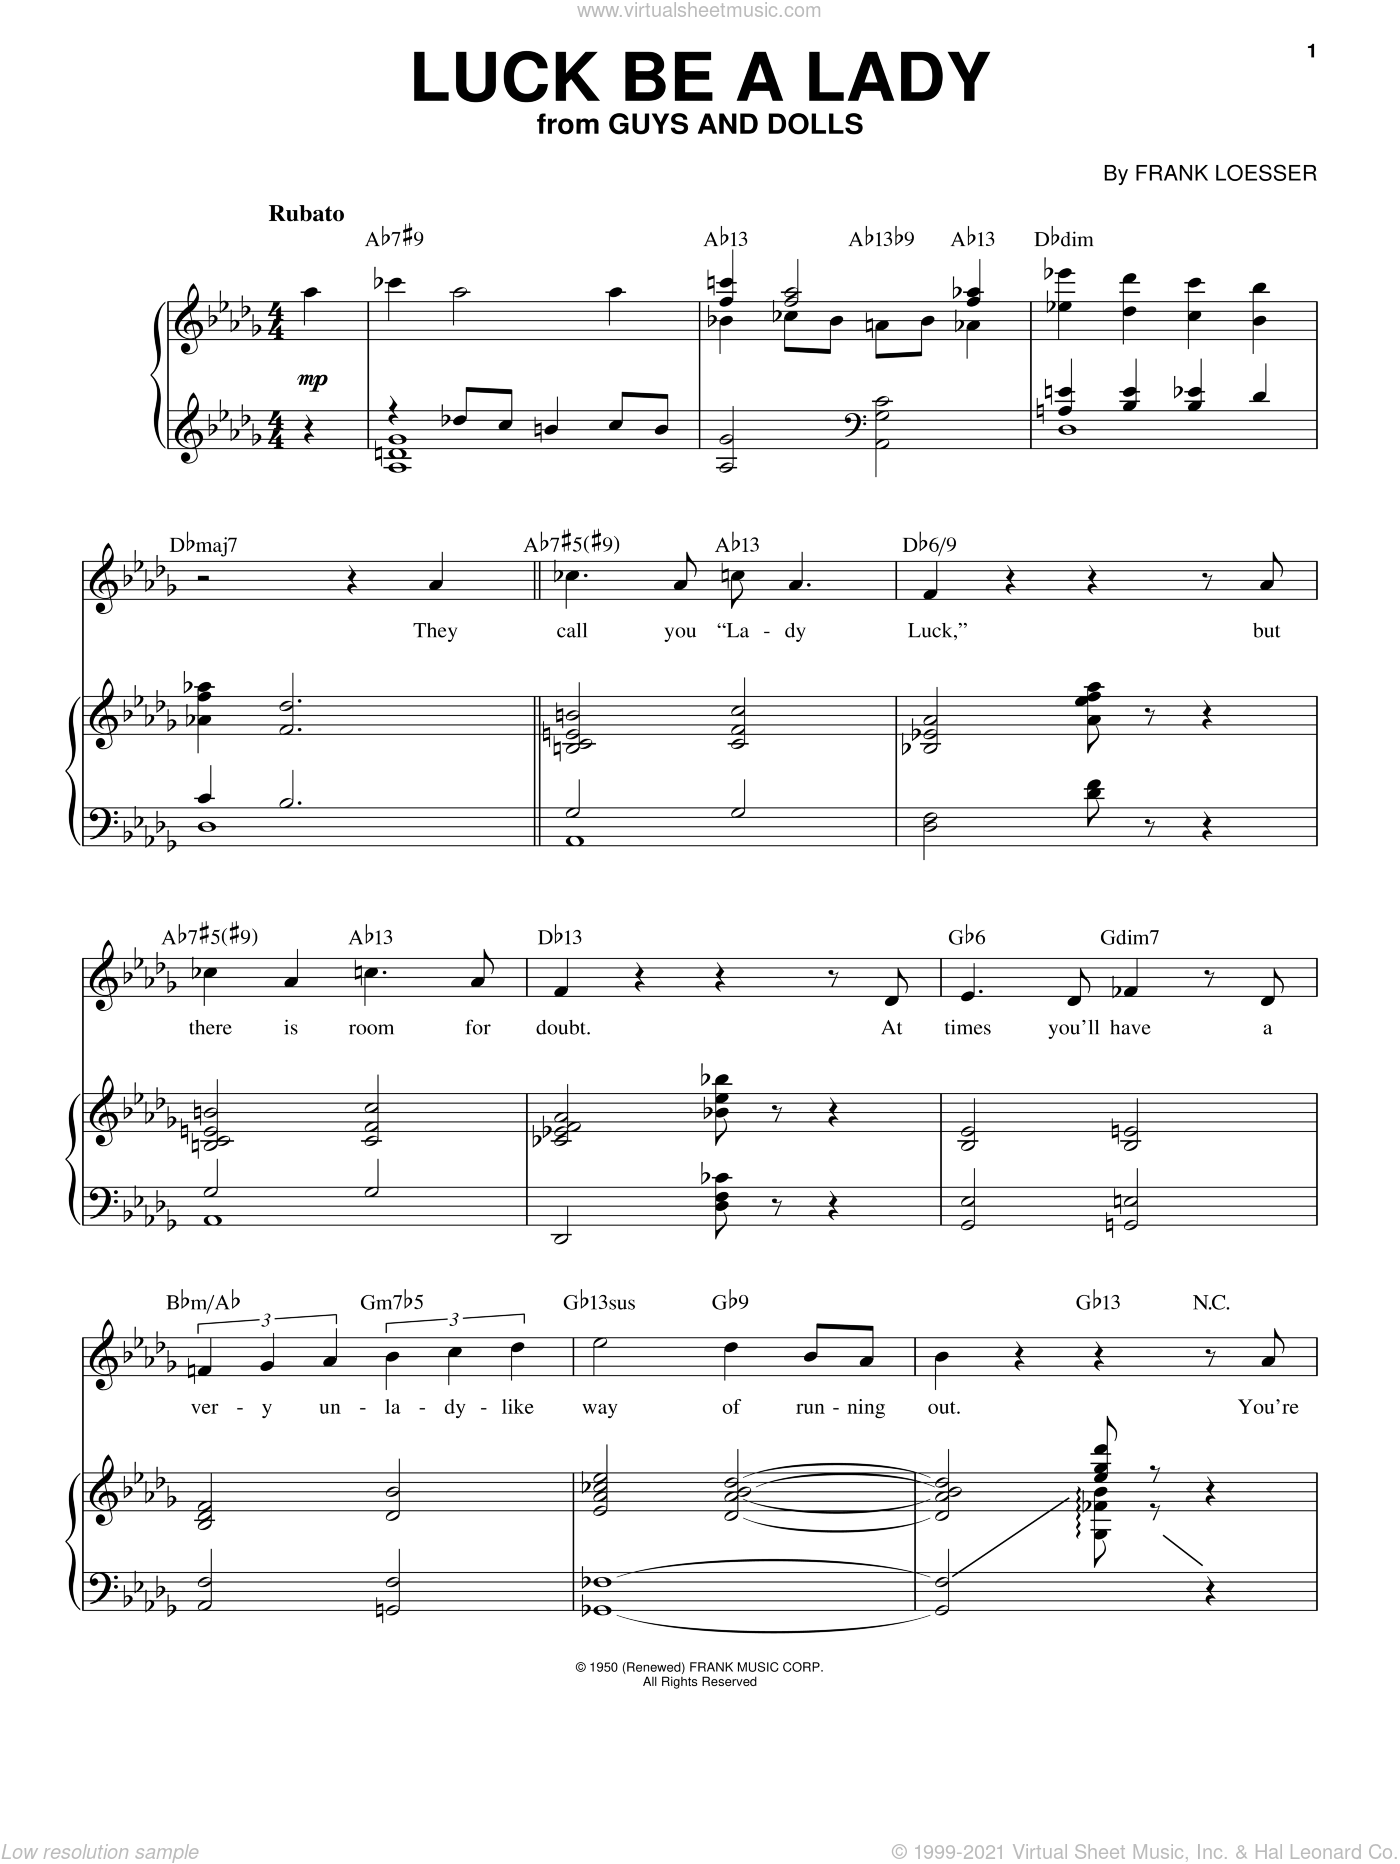 Luck Be A Lady sheet music for voice and piano by Frank Sinatra, Guys And Dolls (Musical) and Frank Loesser, intermediate skill level